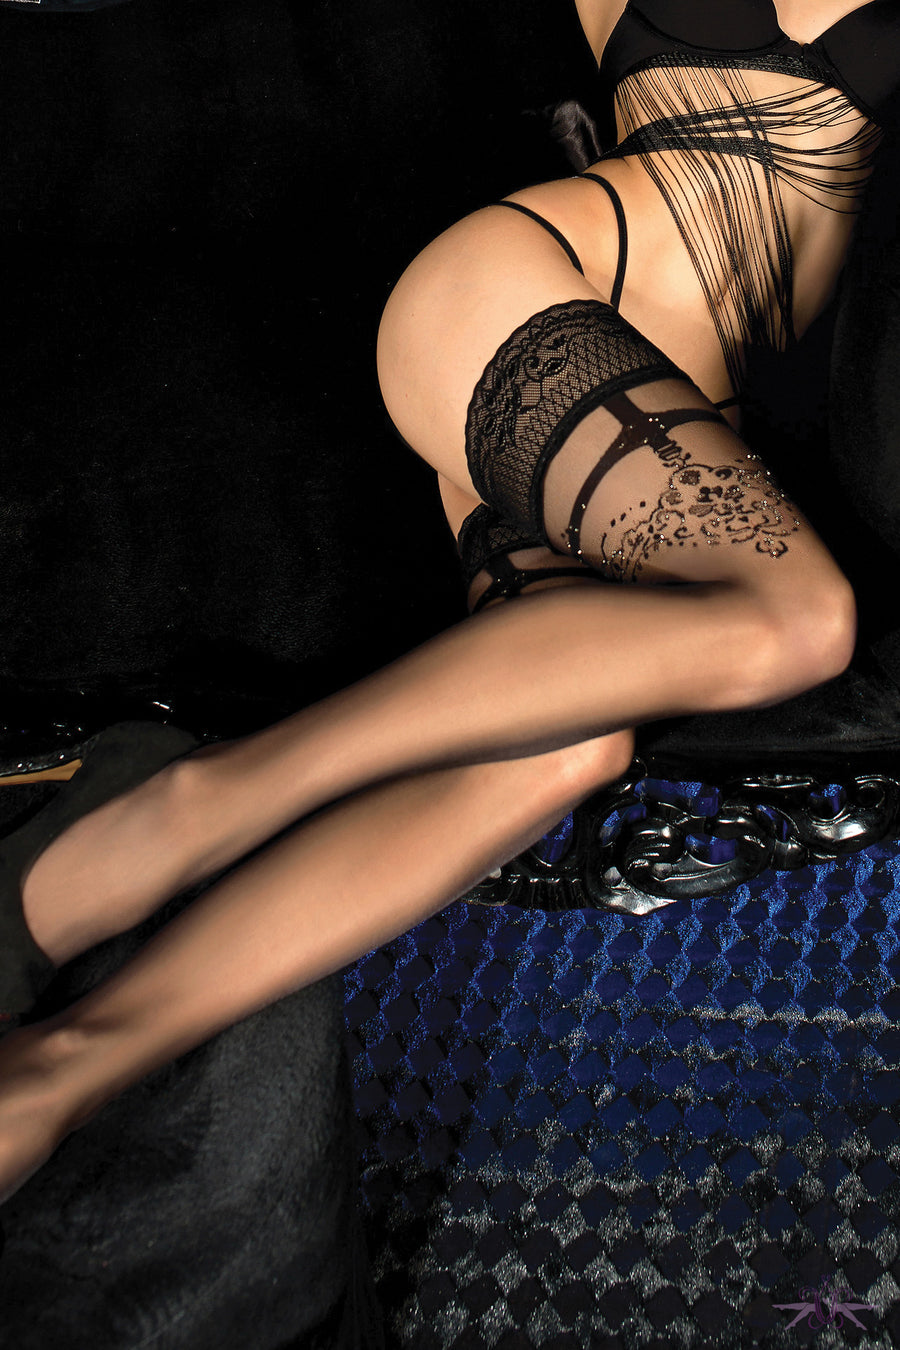 Ballerina Paige Hold Ups - Mayfair Stockings